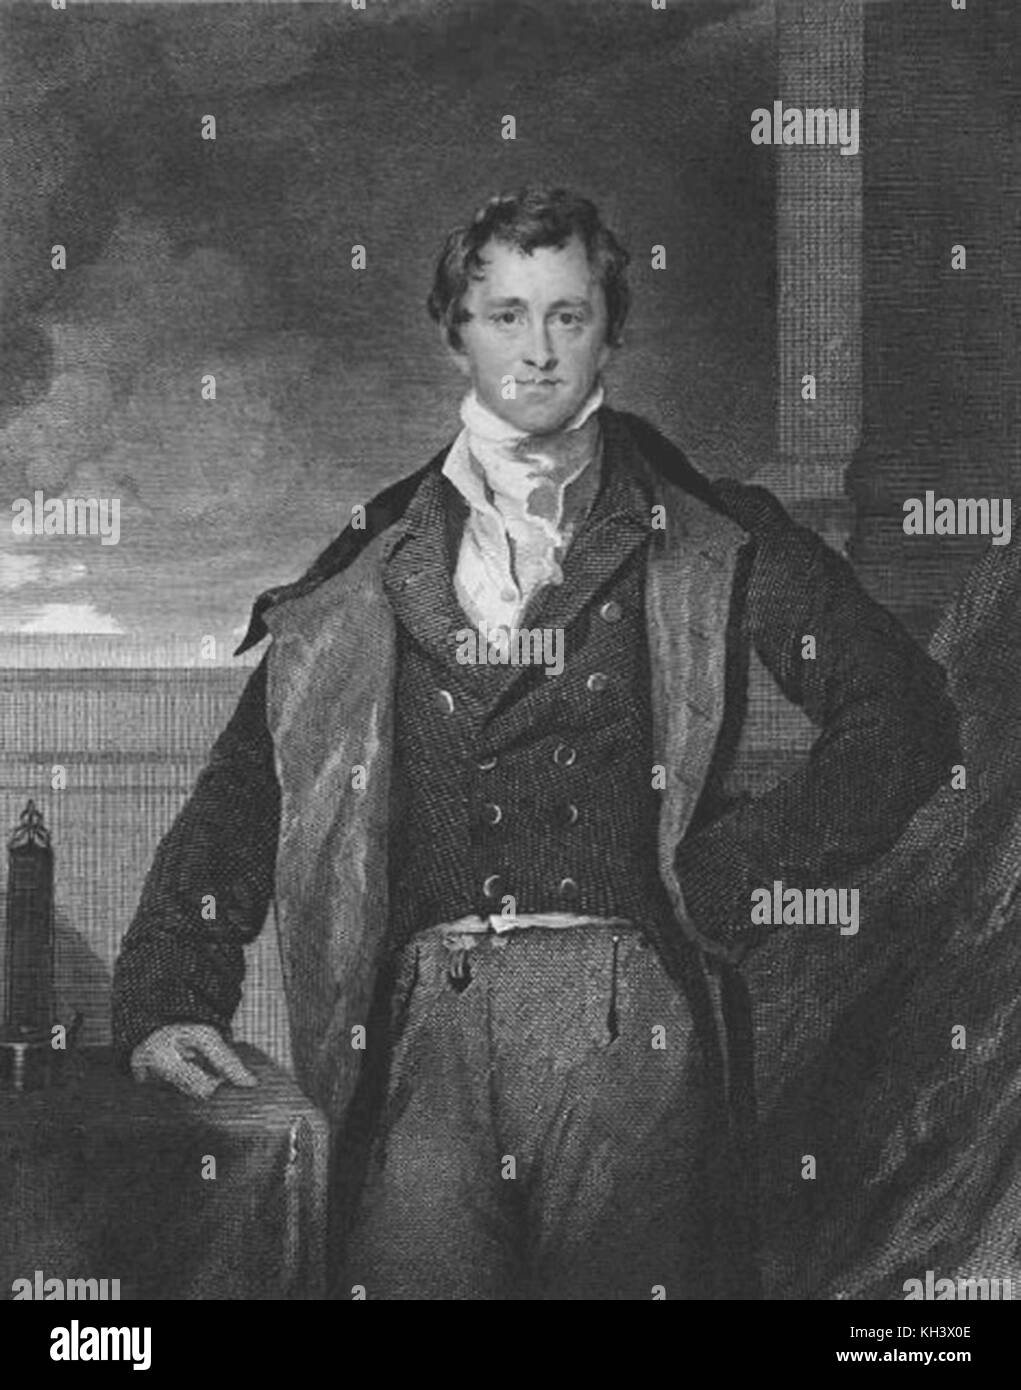 Sir Humphry Davy, 1st Baronet, chemist and inventor - Stock Image